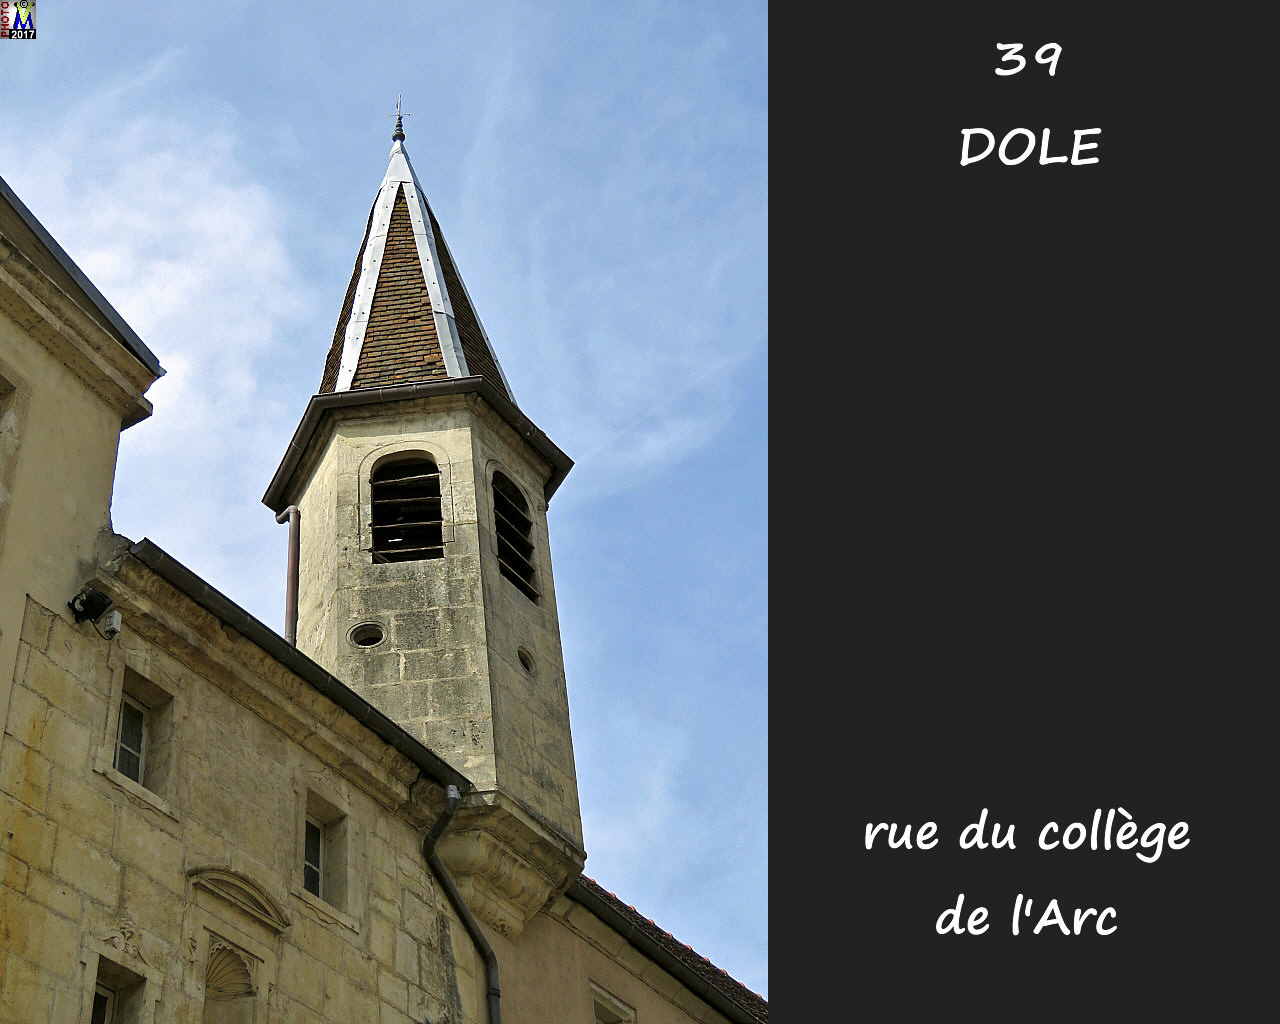 39DOLE_rue-college-Arc-110.jpg